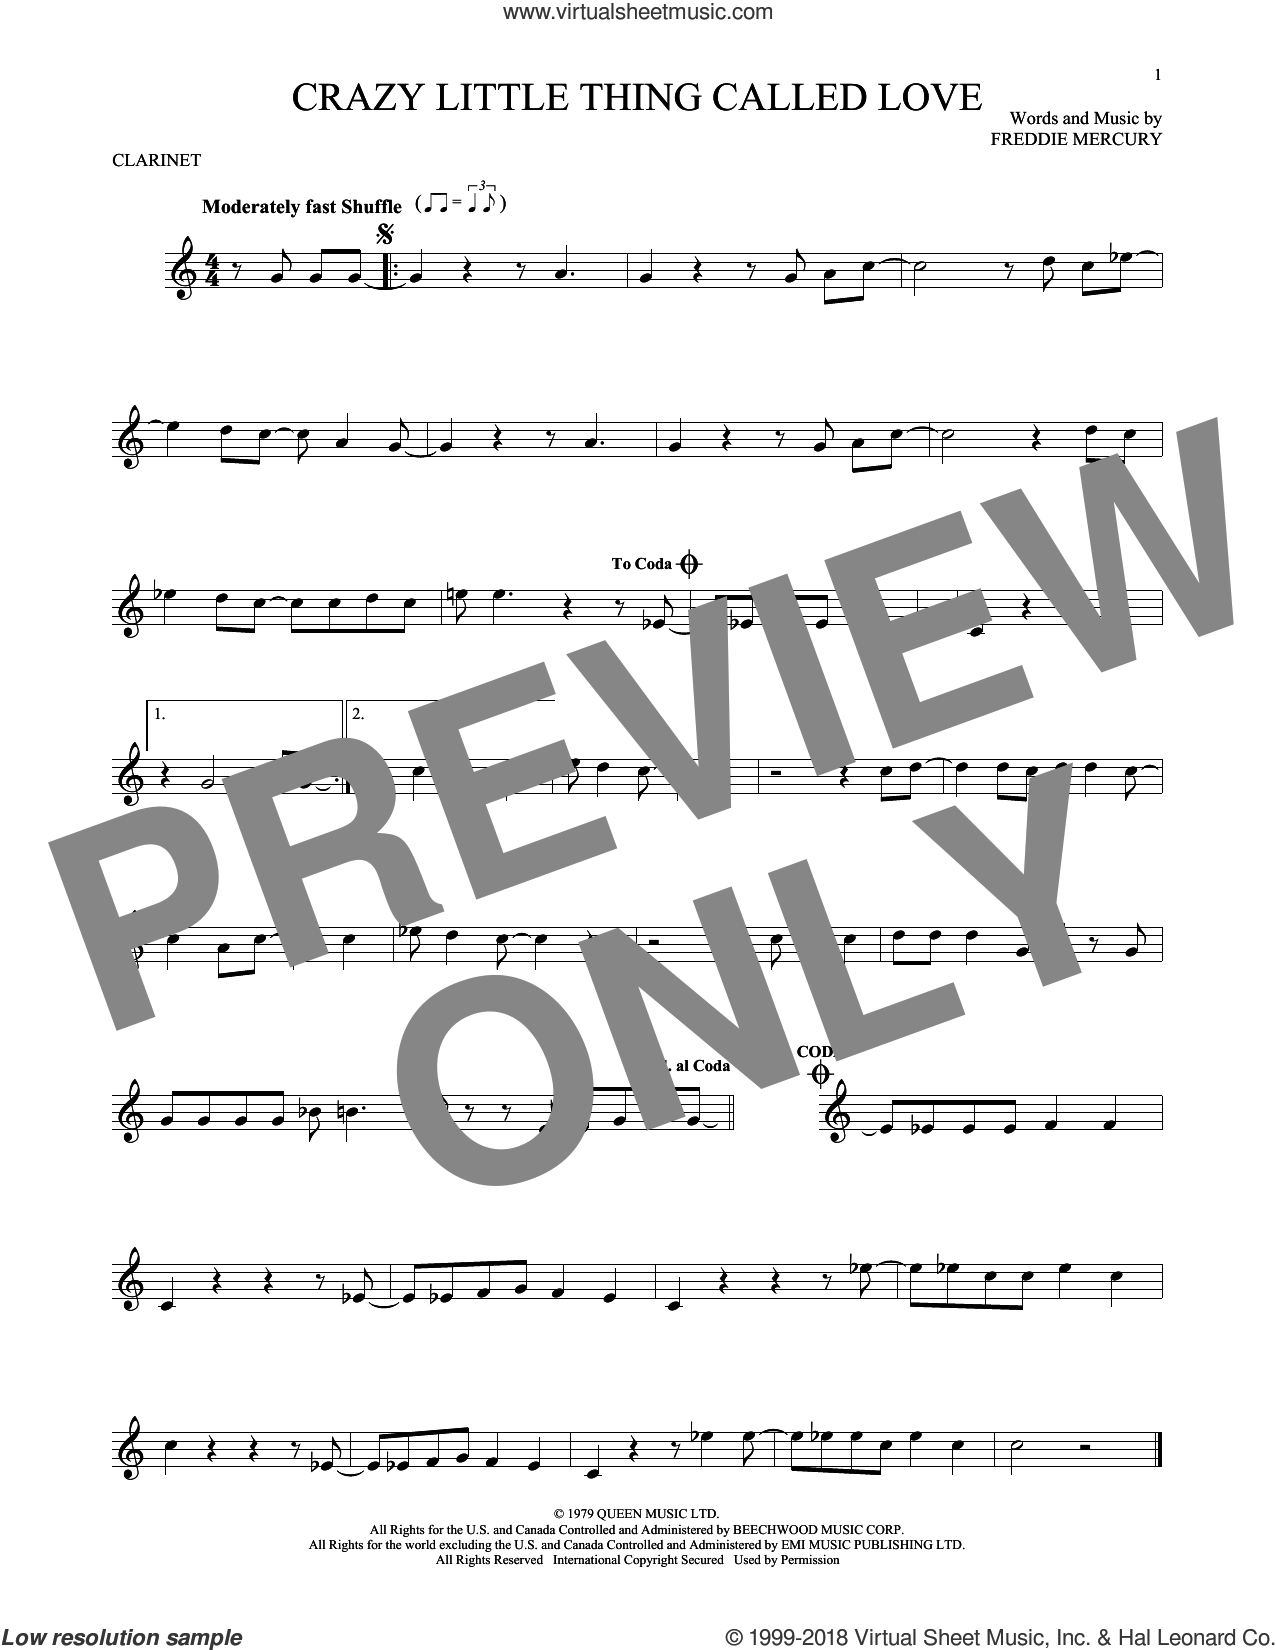 Crazy Little Thing Called Love sheet music for clarinet solo by Queen, Dwight Yoakam and Freddie Mercury, intermediate skill level